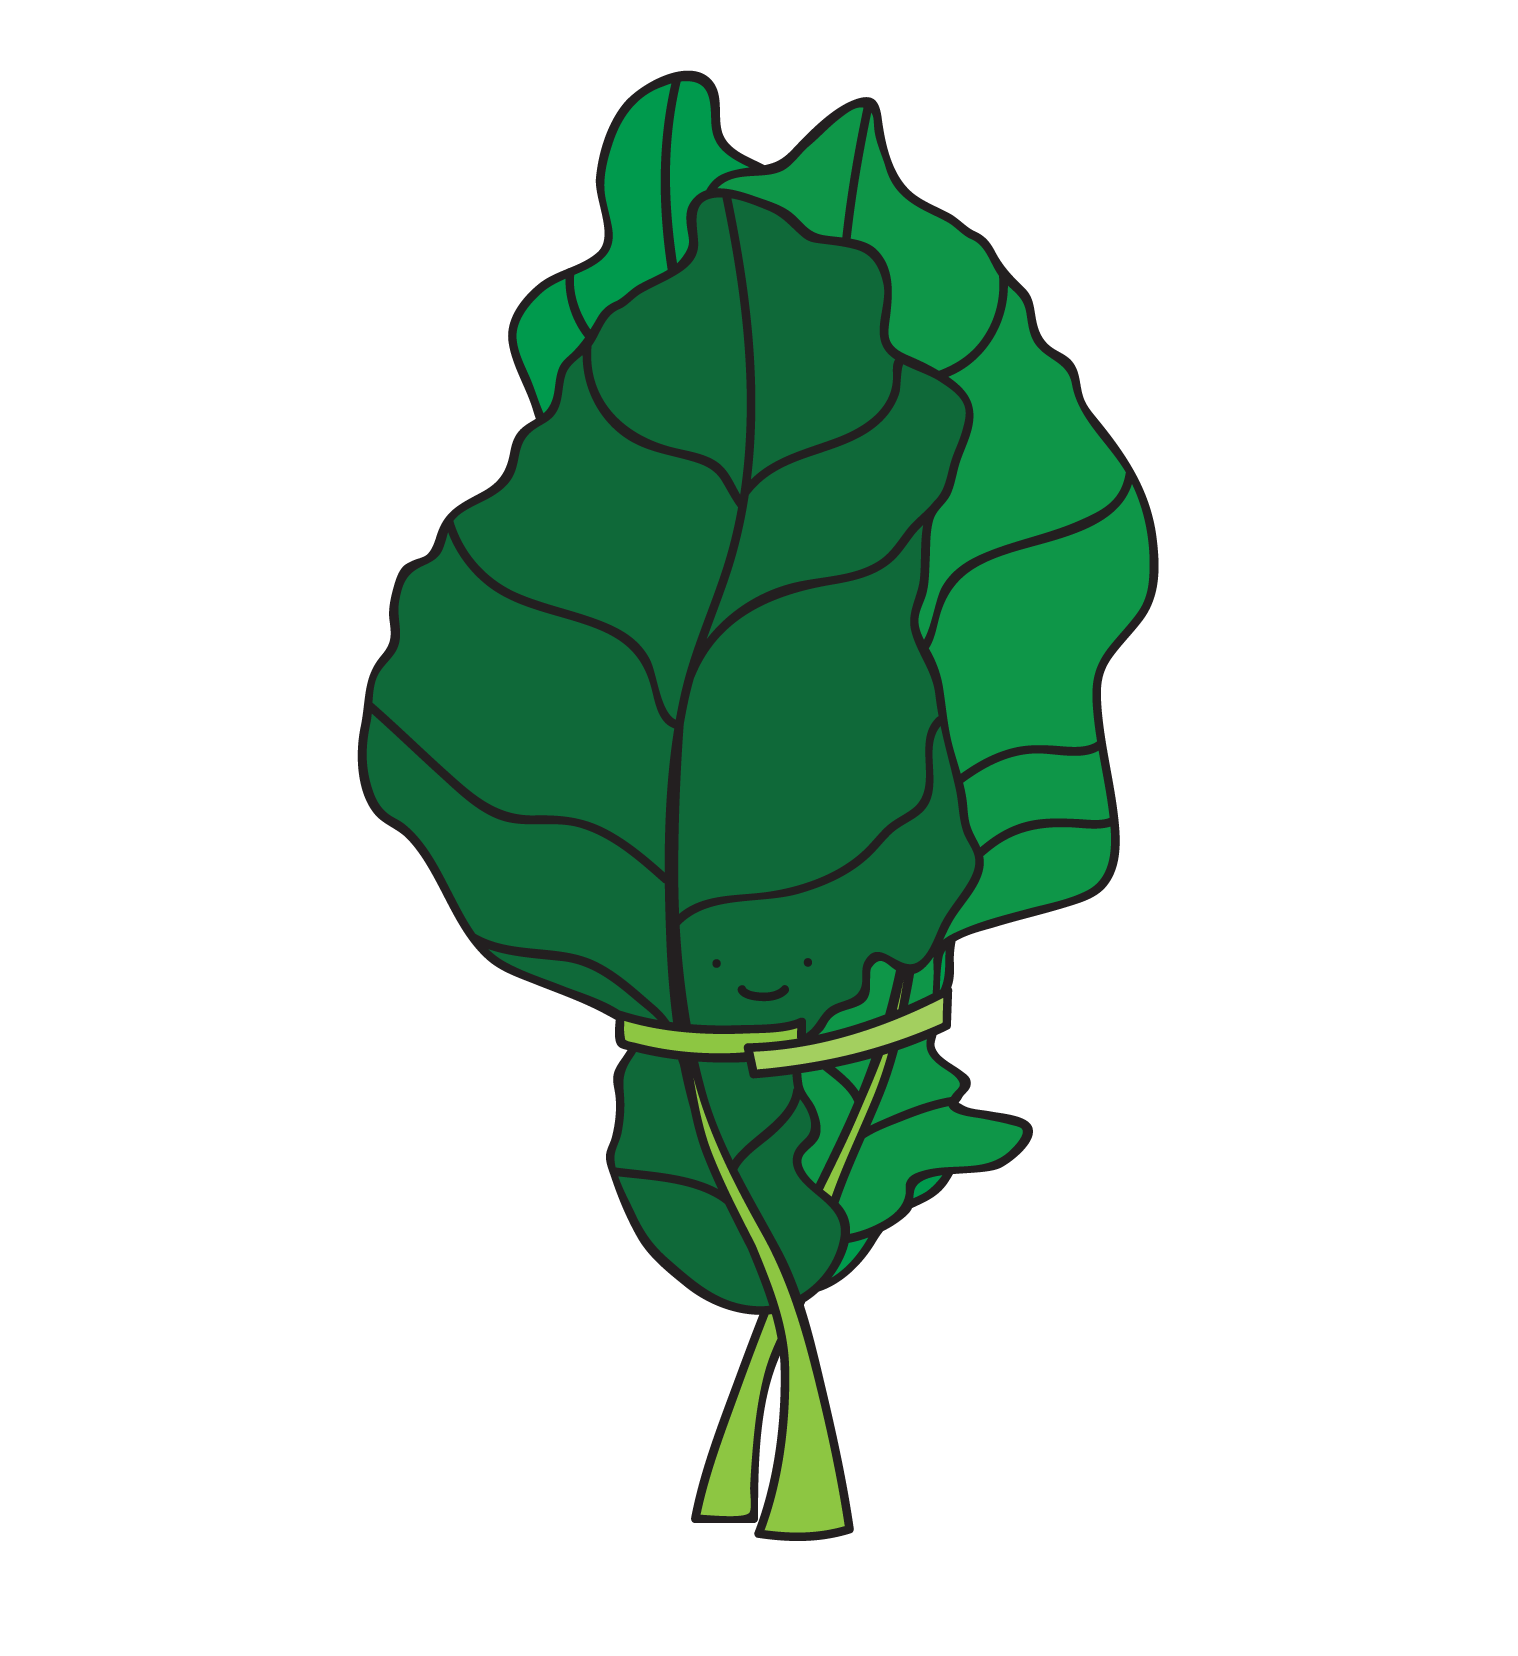 veggies_2016_kale bunch 2.png